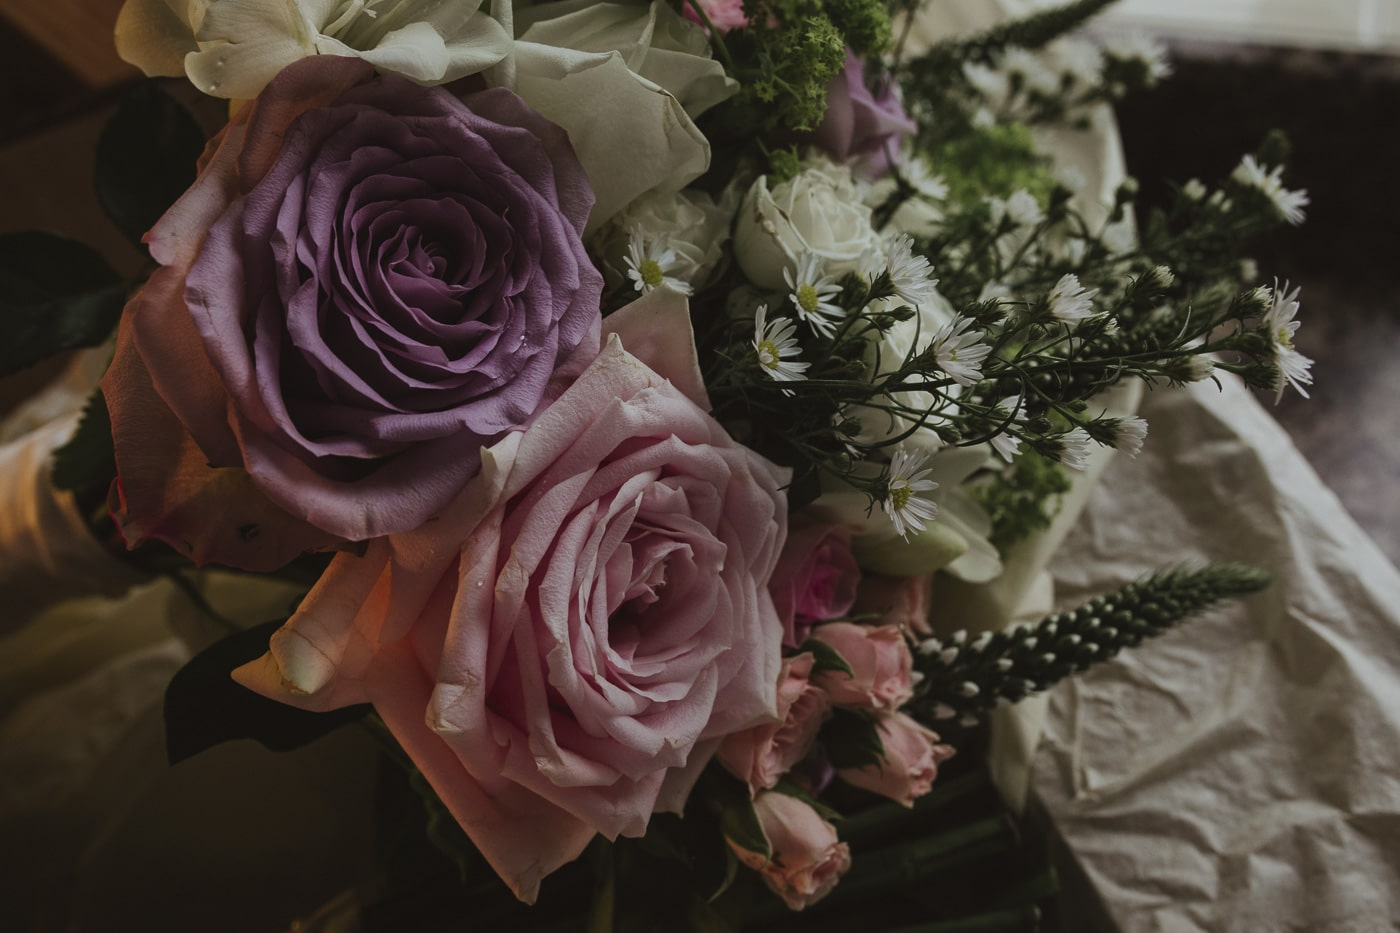 Pink and purple roses with daisies for Cumbria wedding by Joshua Wyborn